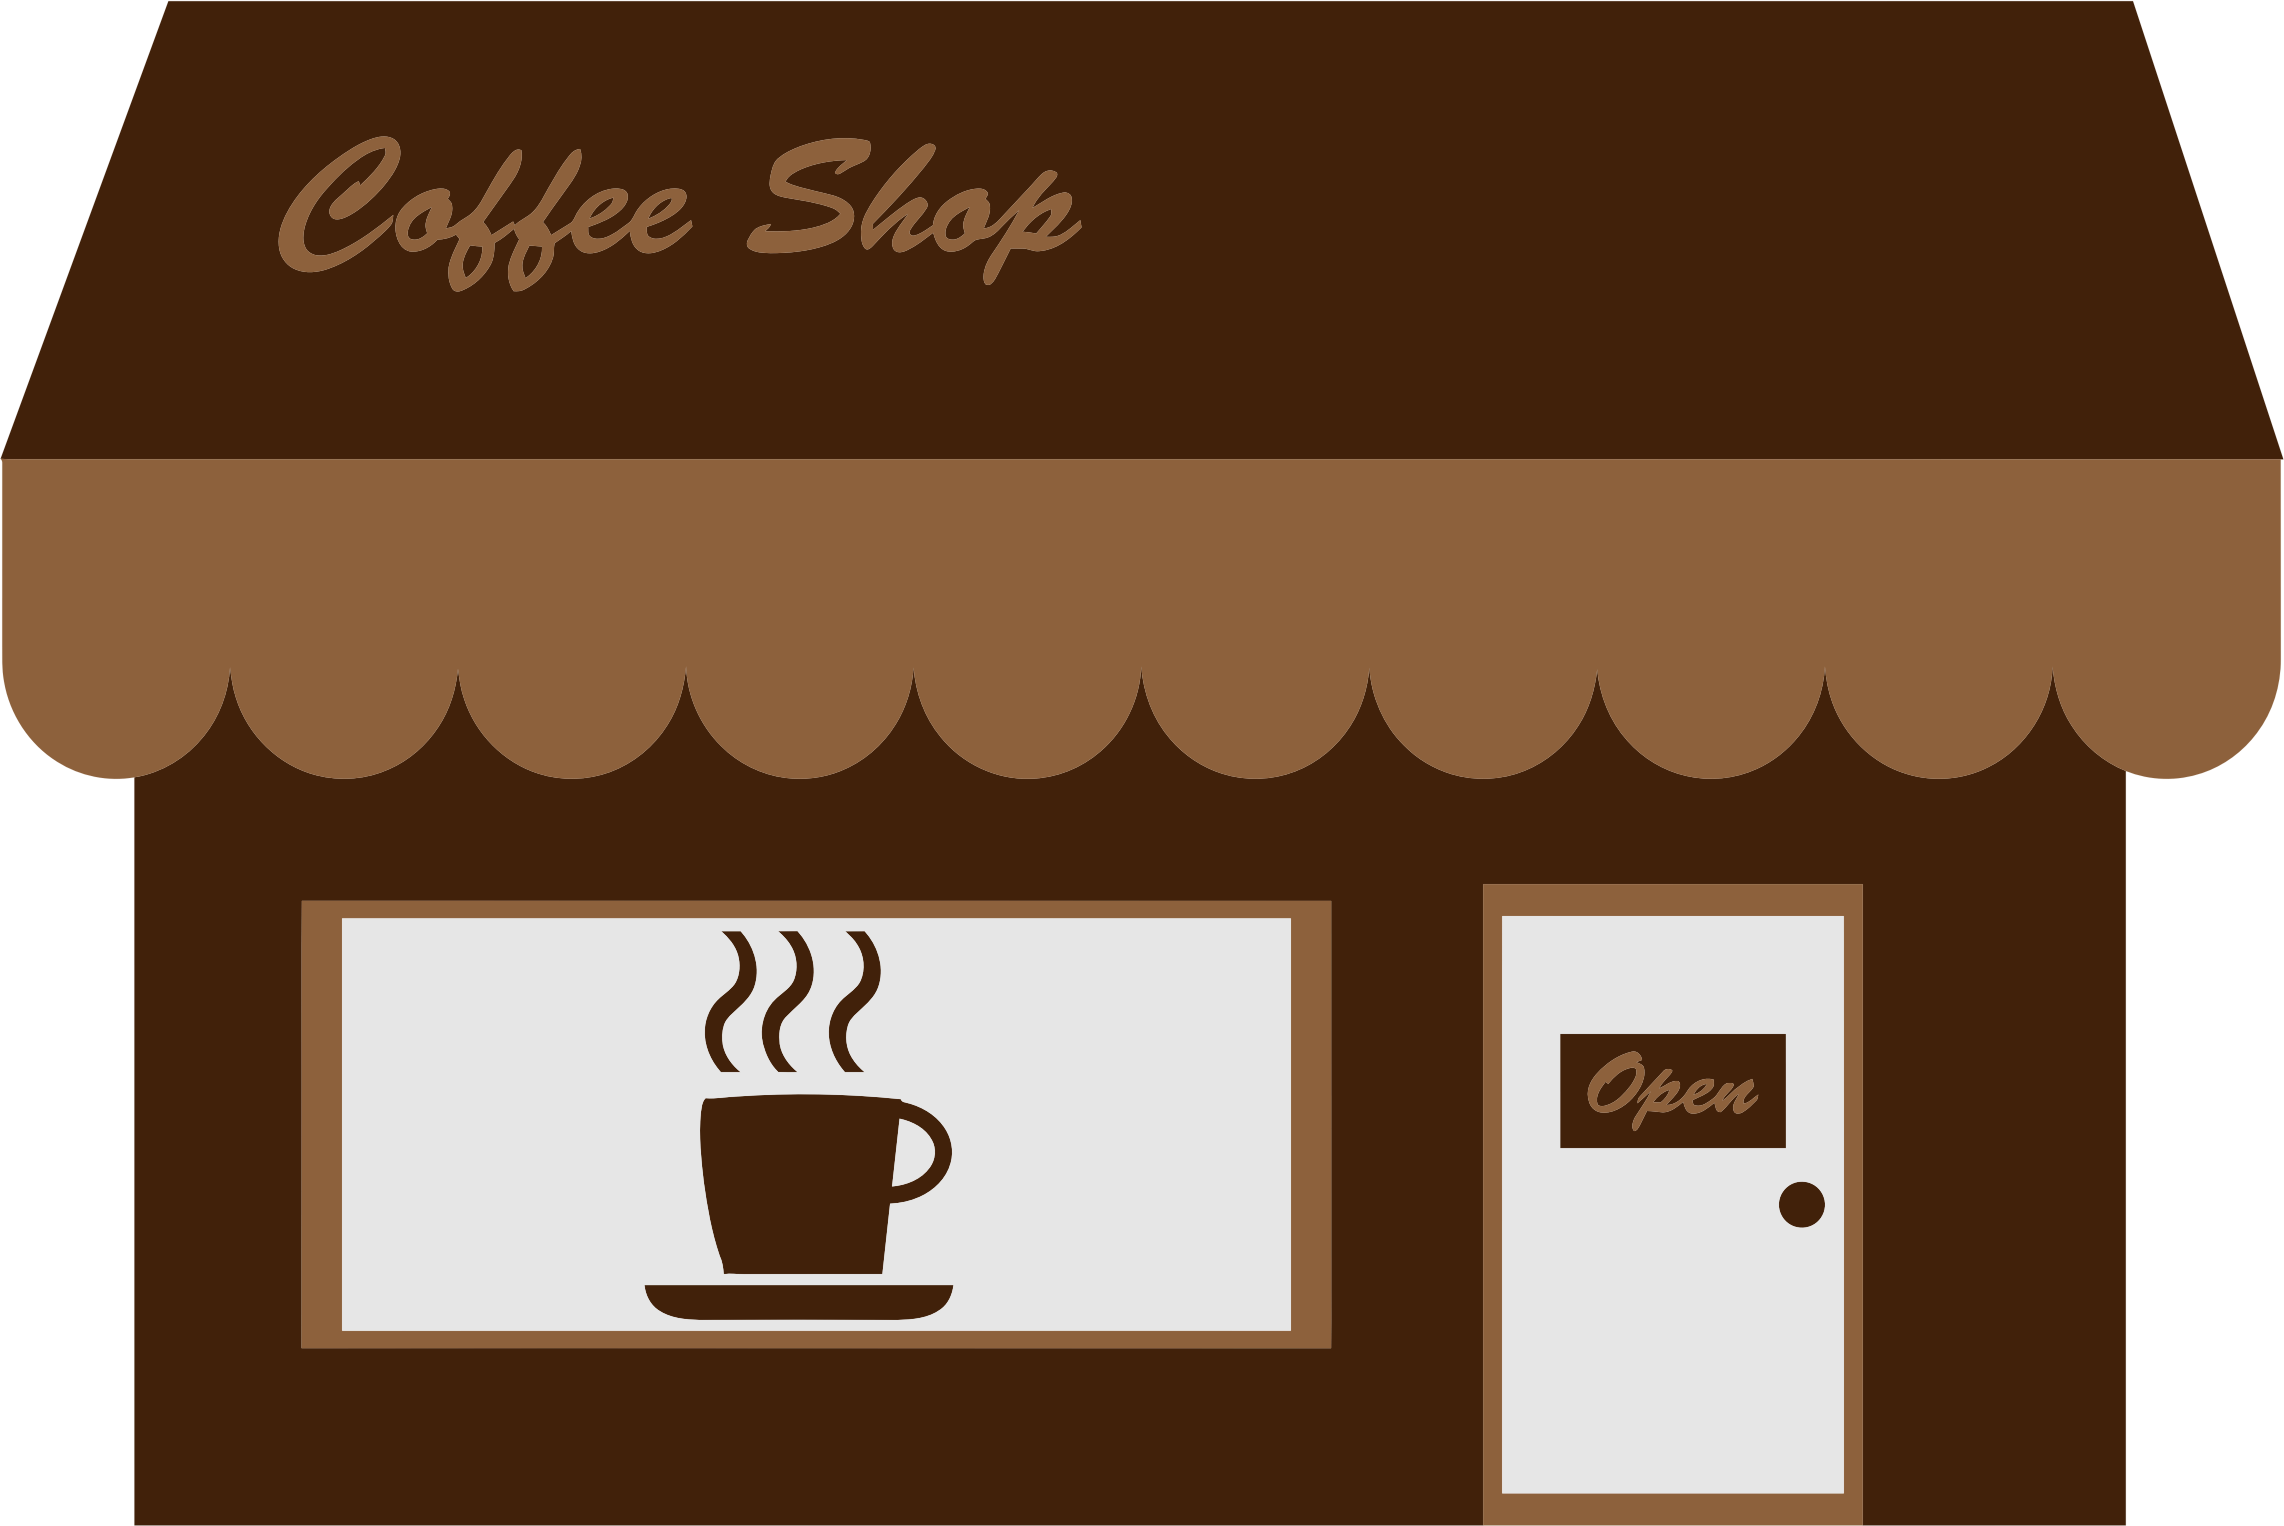 Cafe clipart coffee shop. Storefront big image png